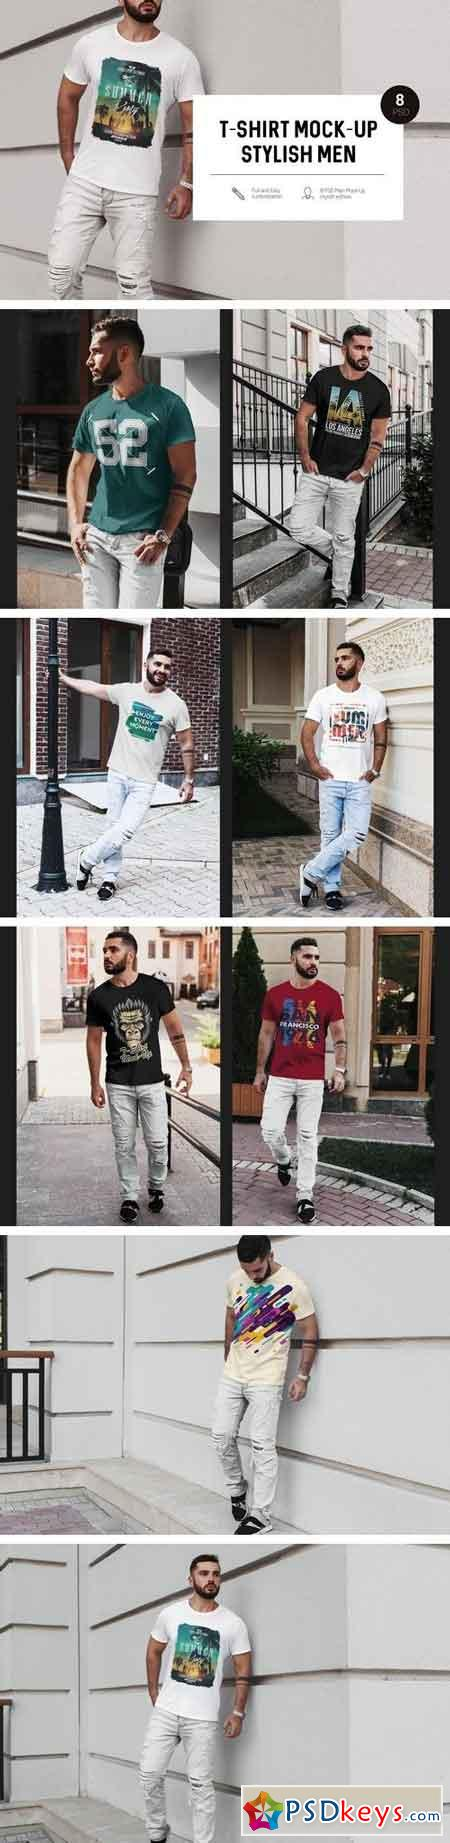 T-Shirt Mock-Up Stylish Men 2000828